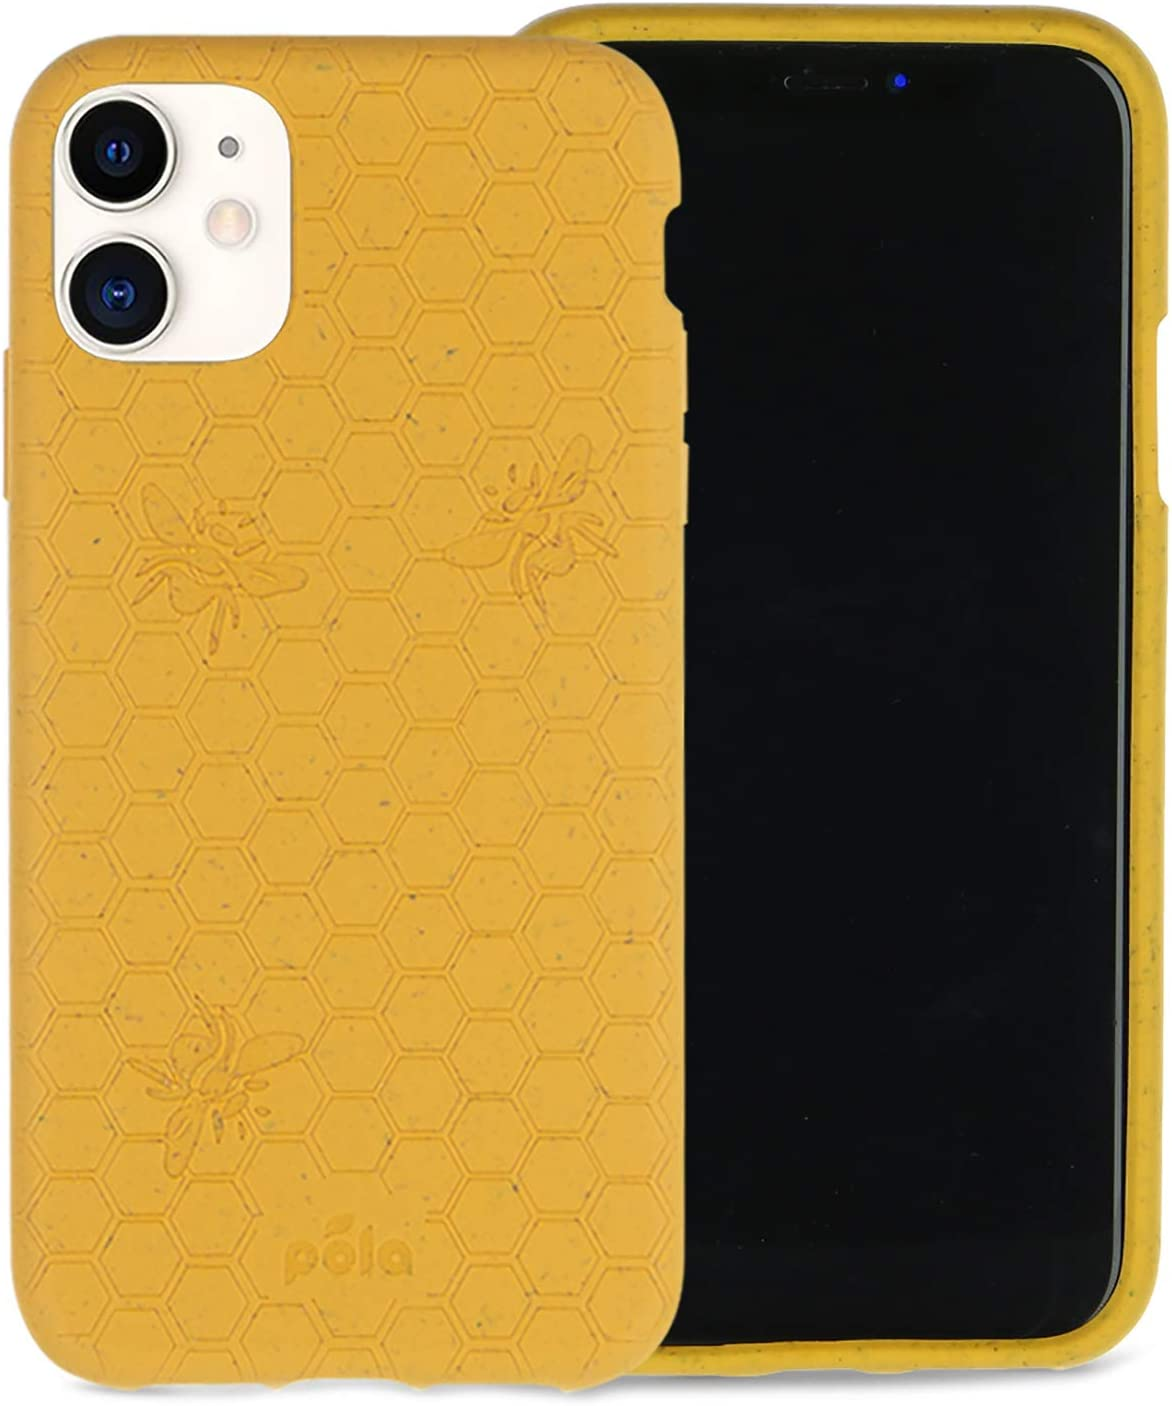 Pela: Phone Case for iPhone 11-100% Compostable and Biodegradable - Eco-Friendly - Made from Plants (11 Honey Bee)